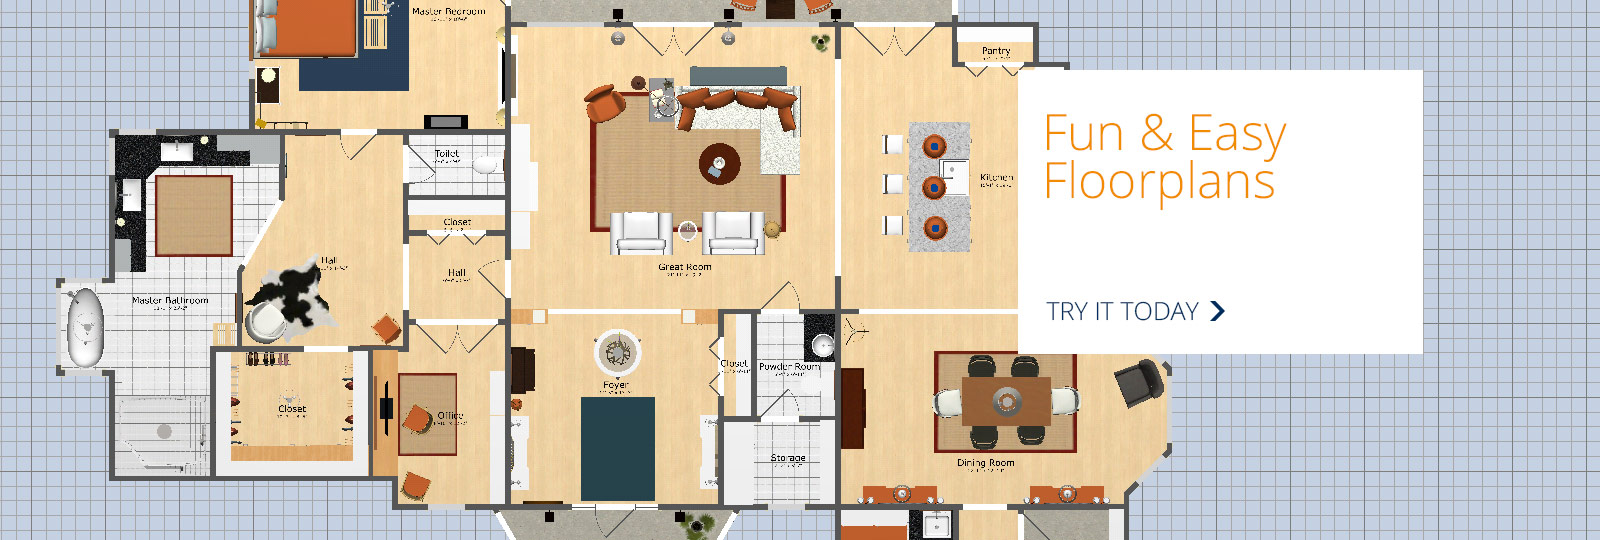 Home Architecture Design Software house modernarchitecturaldesign Fun And Easy Floorplans